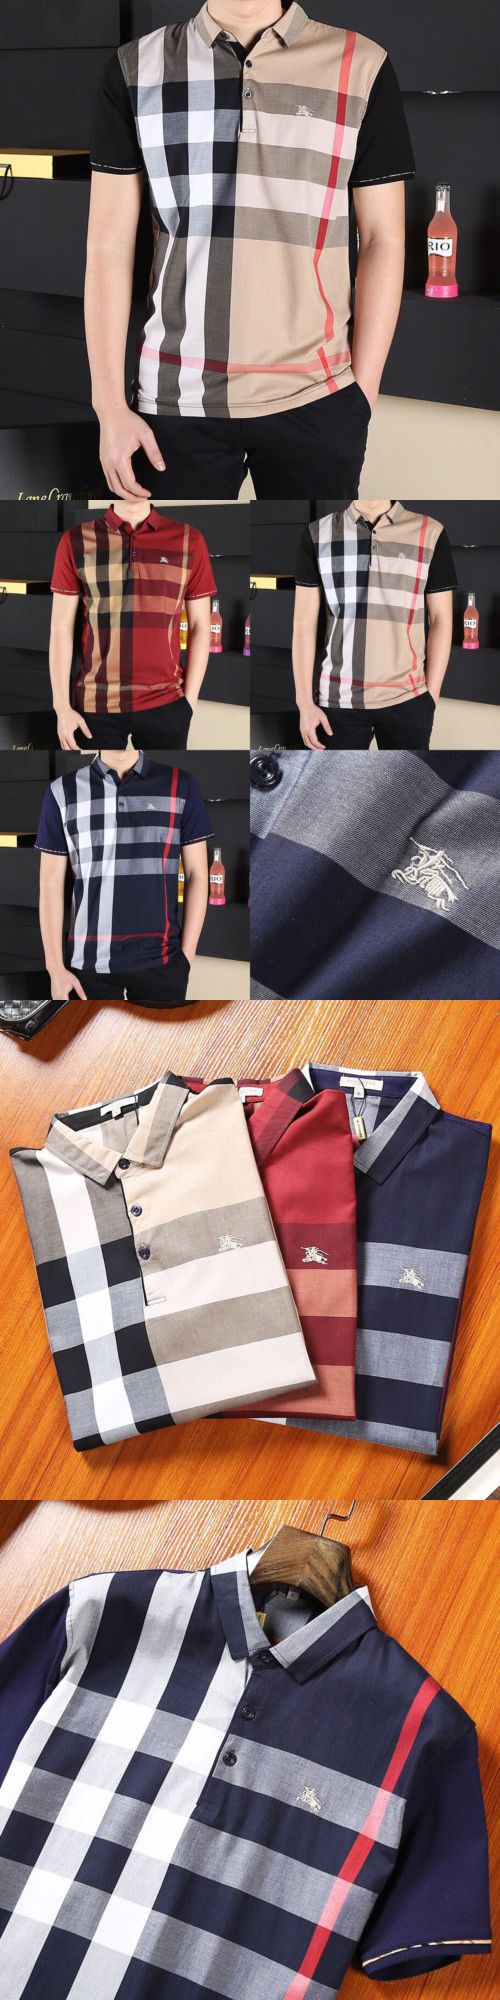 clothing and accessories: Burberry Brit Men Casual Short Sleeve Polo Shirt Men T-Shirt Adult Size M-3Xl -> BUY IT NOW ONLY: $77.88 on eBay!